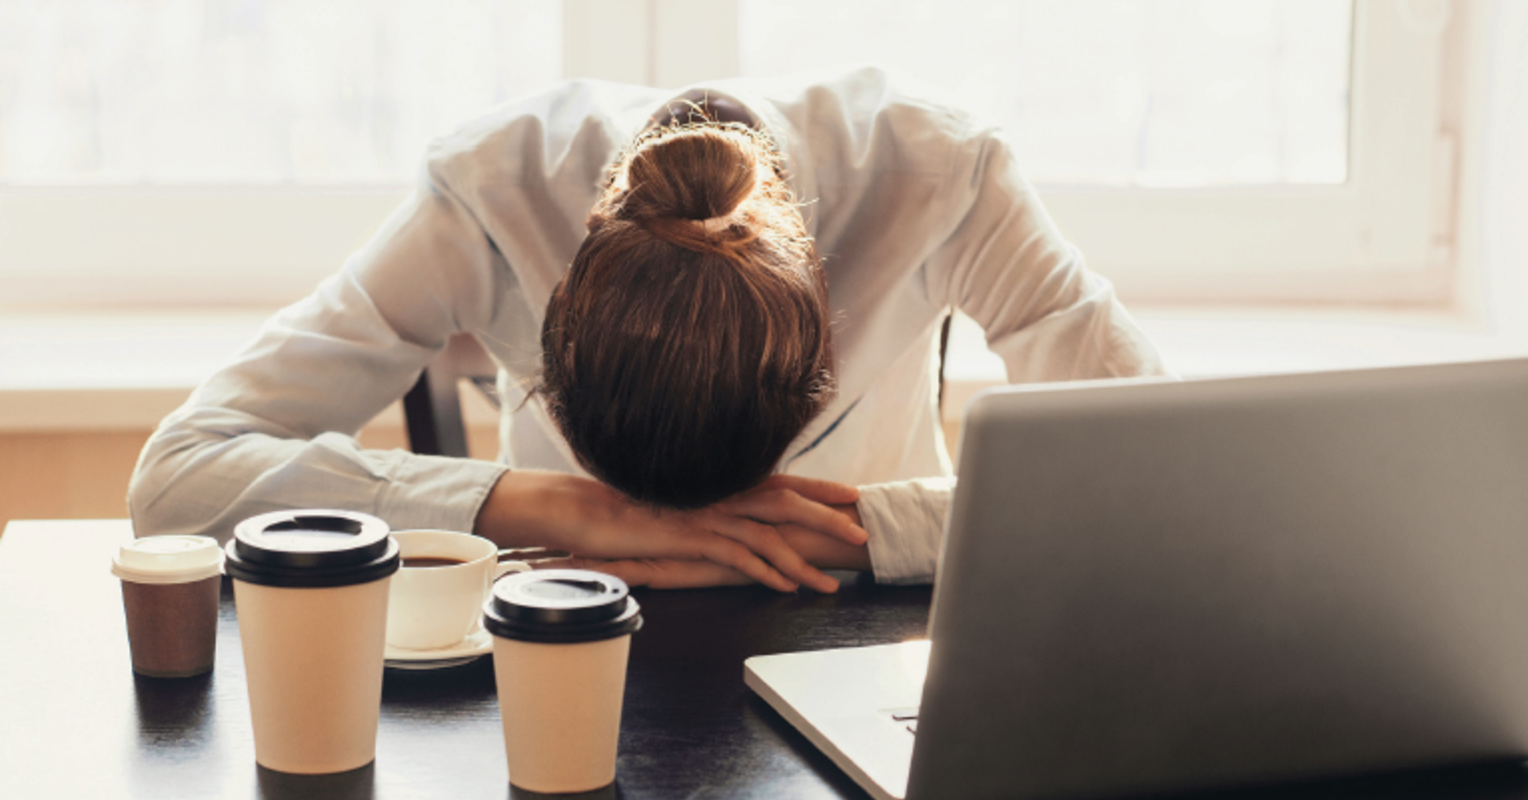 How to Survive Zoom Fatigue and Online Burnout